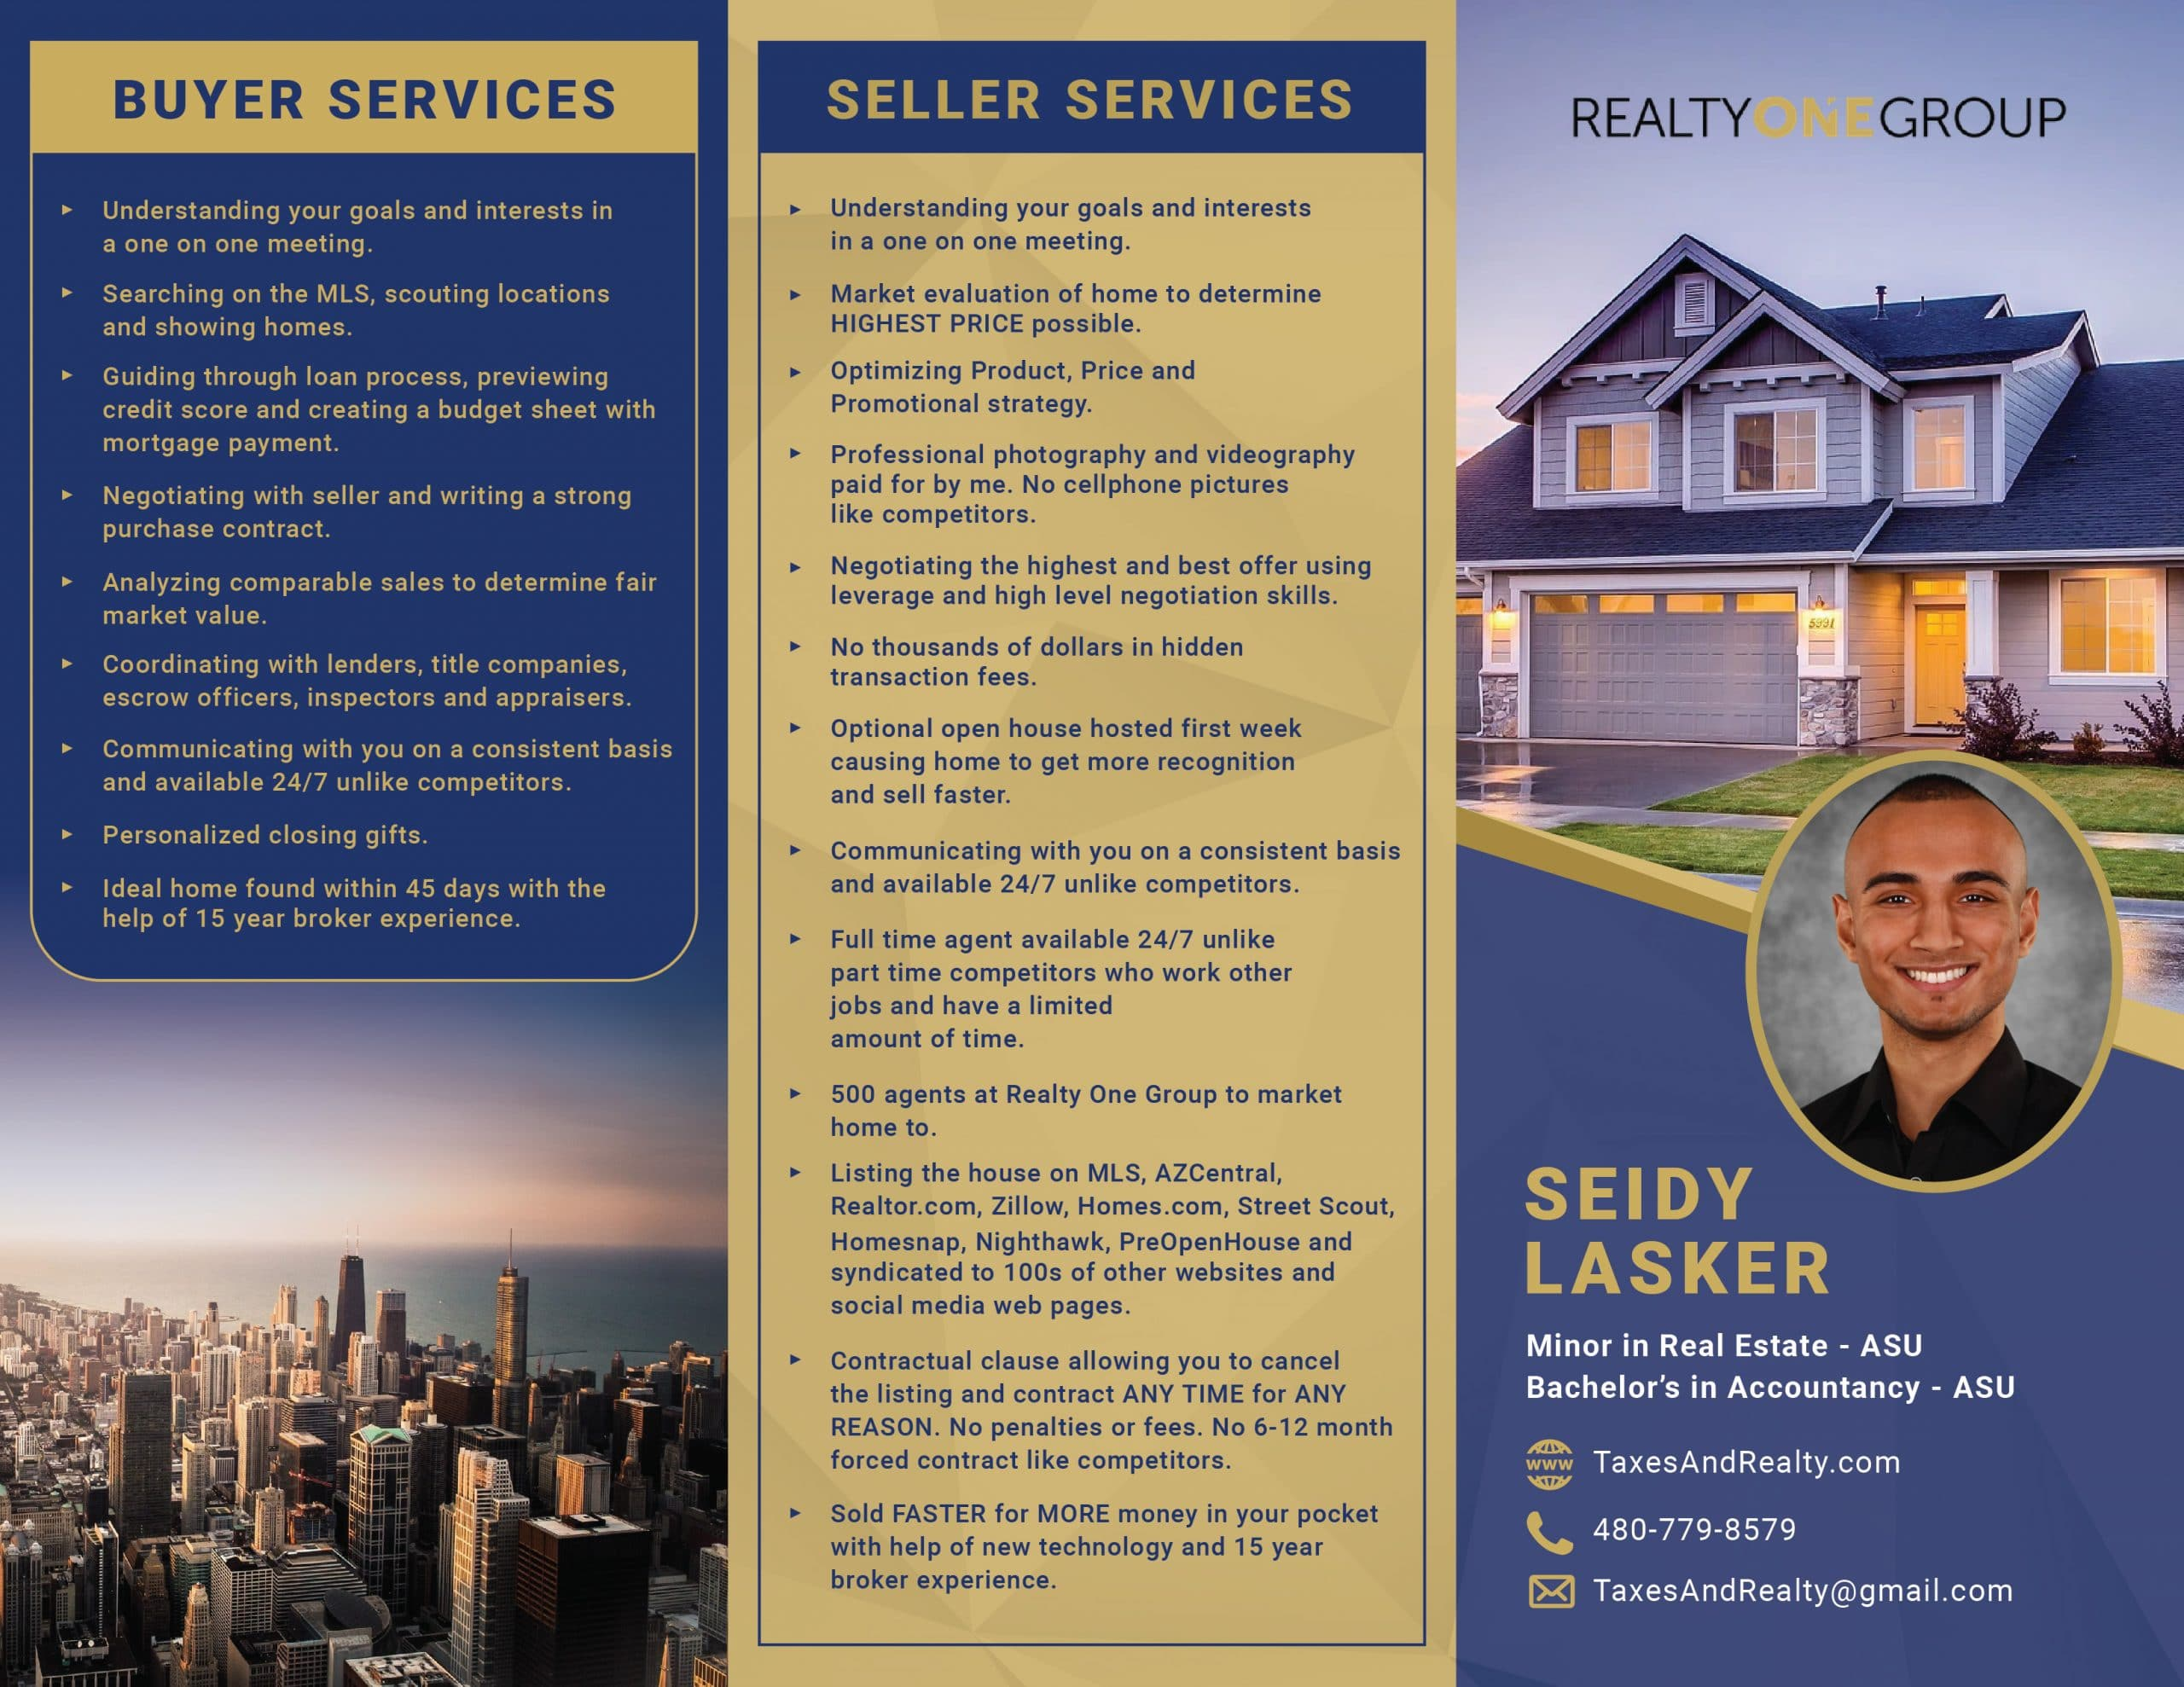 %Laveen Tax Preparation & Accountant%Bookkeeper & Real Estate Agent Laveen